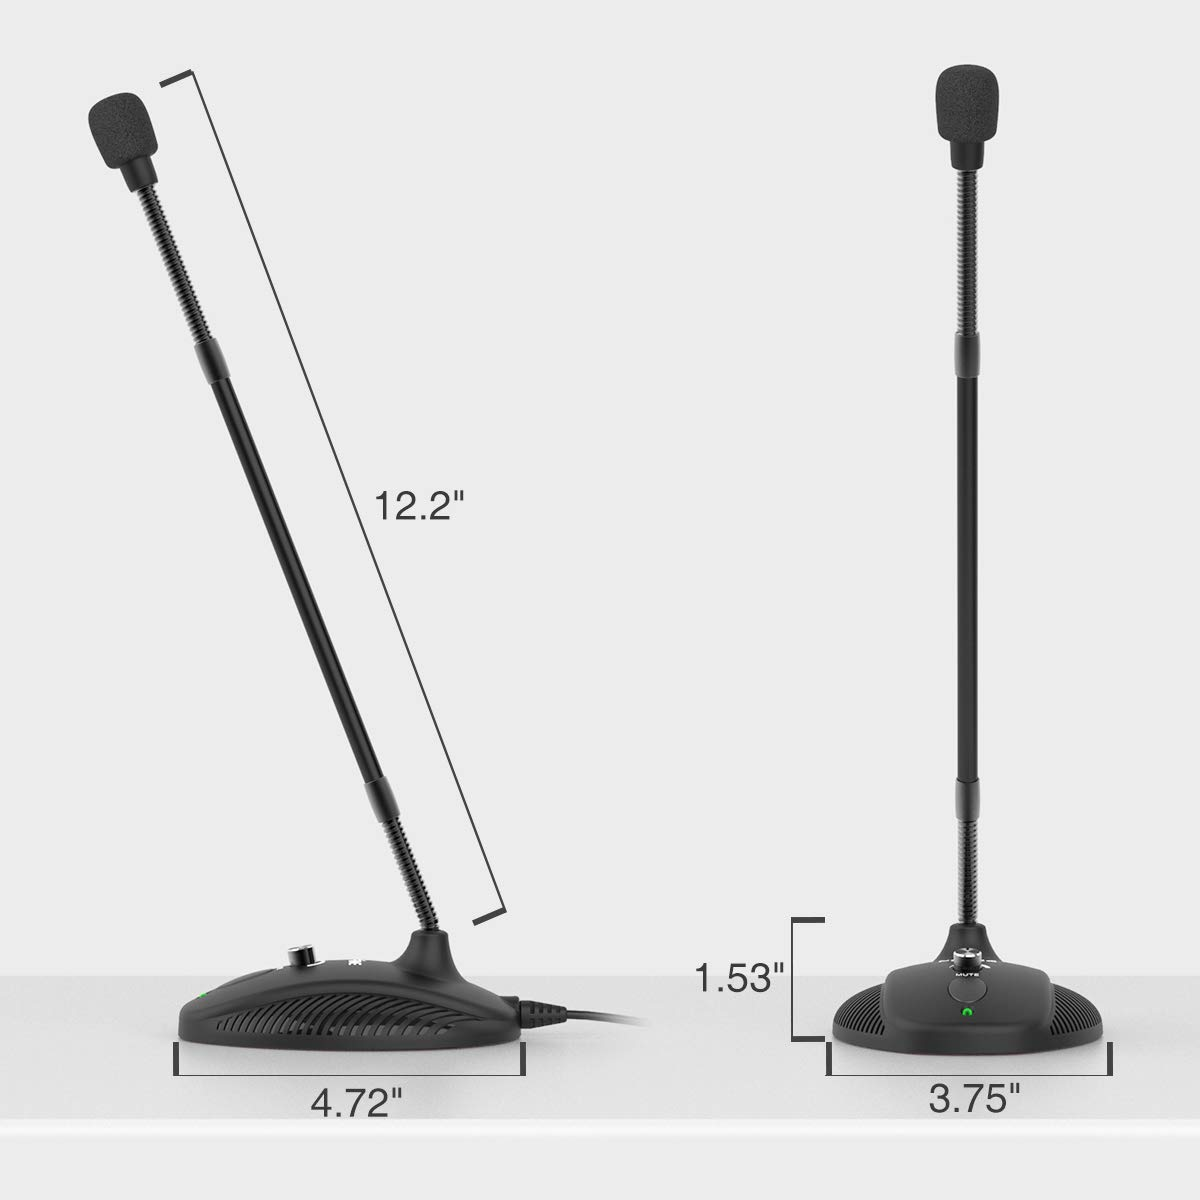 Computer Microphone,FIFINE Desktop Gooseneck Microphone,Mute Button with LED Indicator,USB Microphone for Windows/Mac.Ideal for Gaming Streaming YouTube Podcast.(K052) by FIFINE TECHNOLOGY (Image #4)